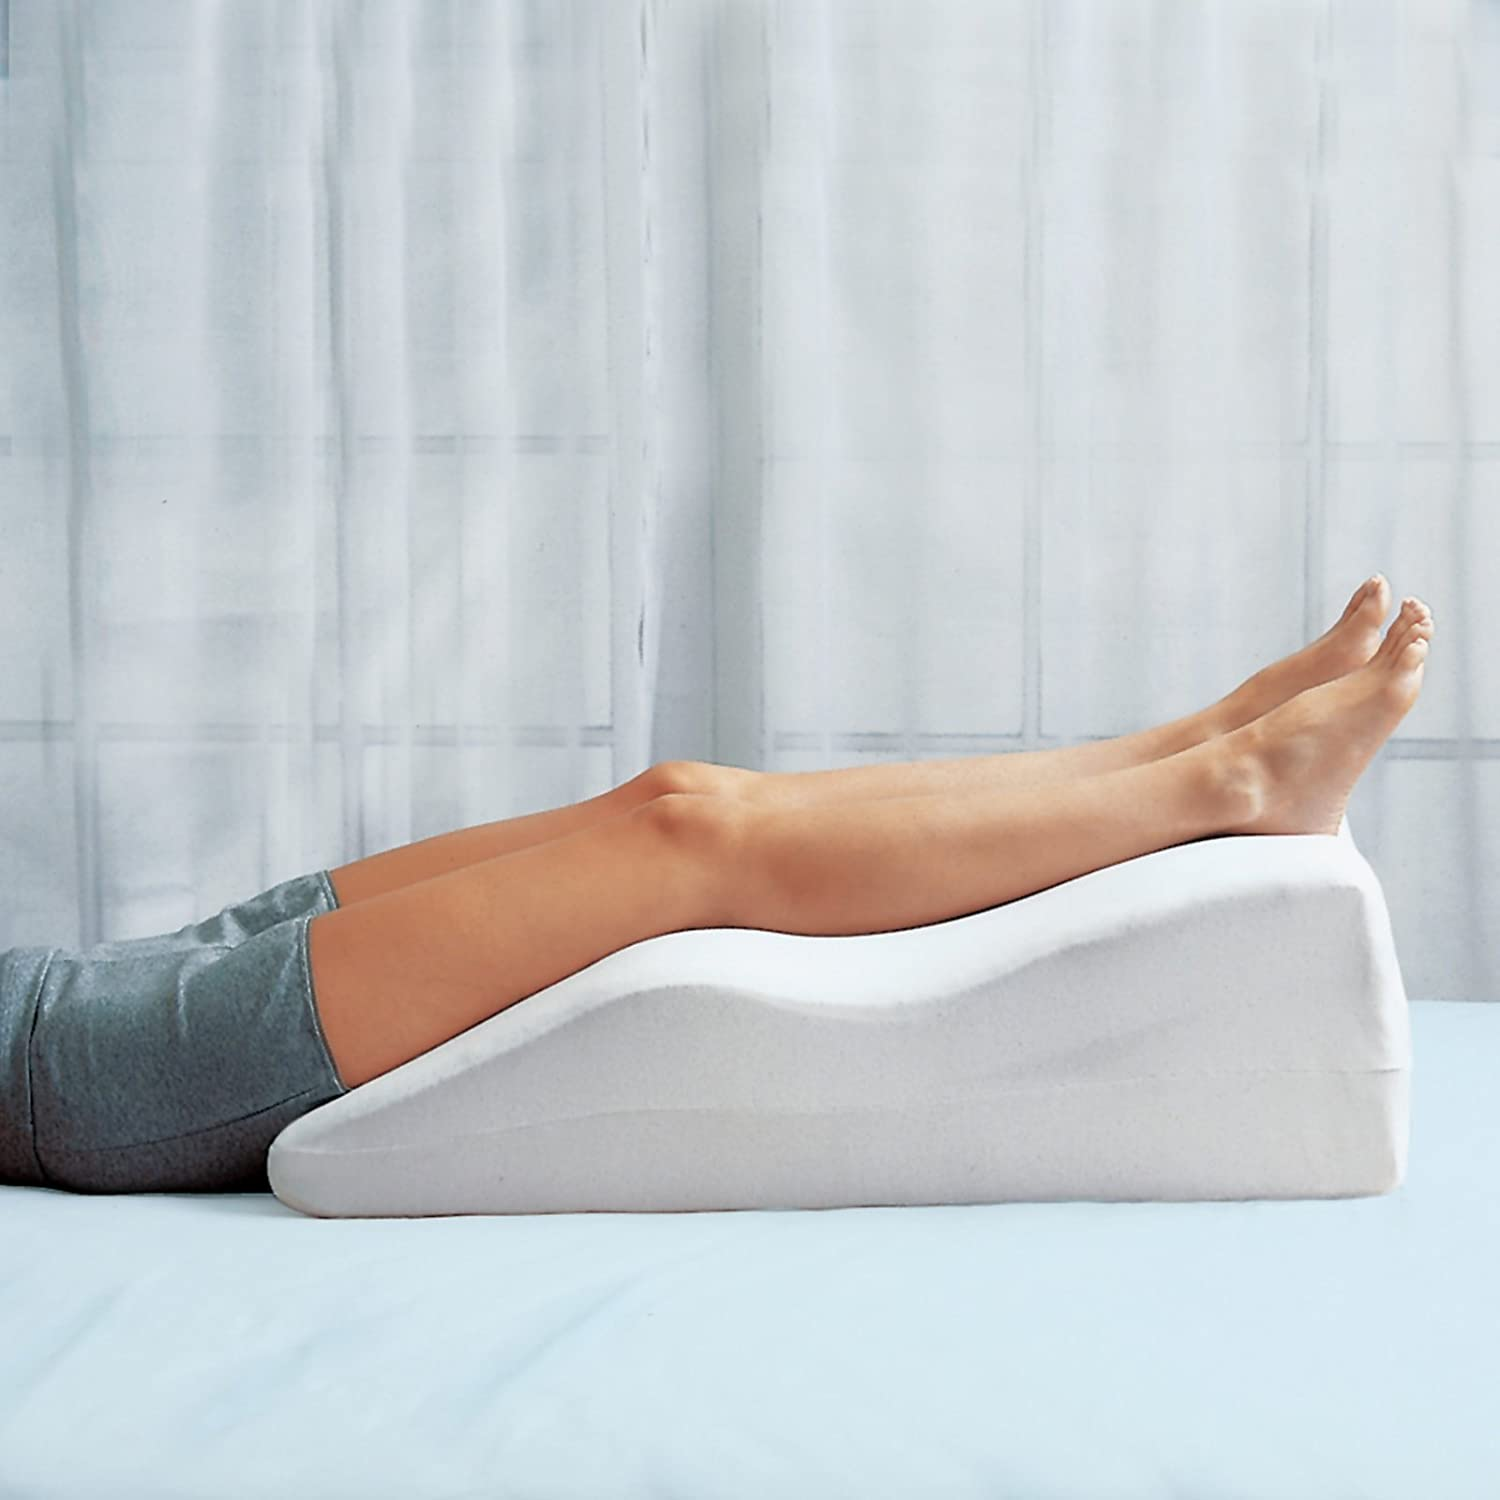 Leg Elevation Pillow Leg Elevator by Footsmart